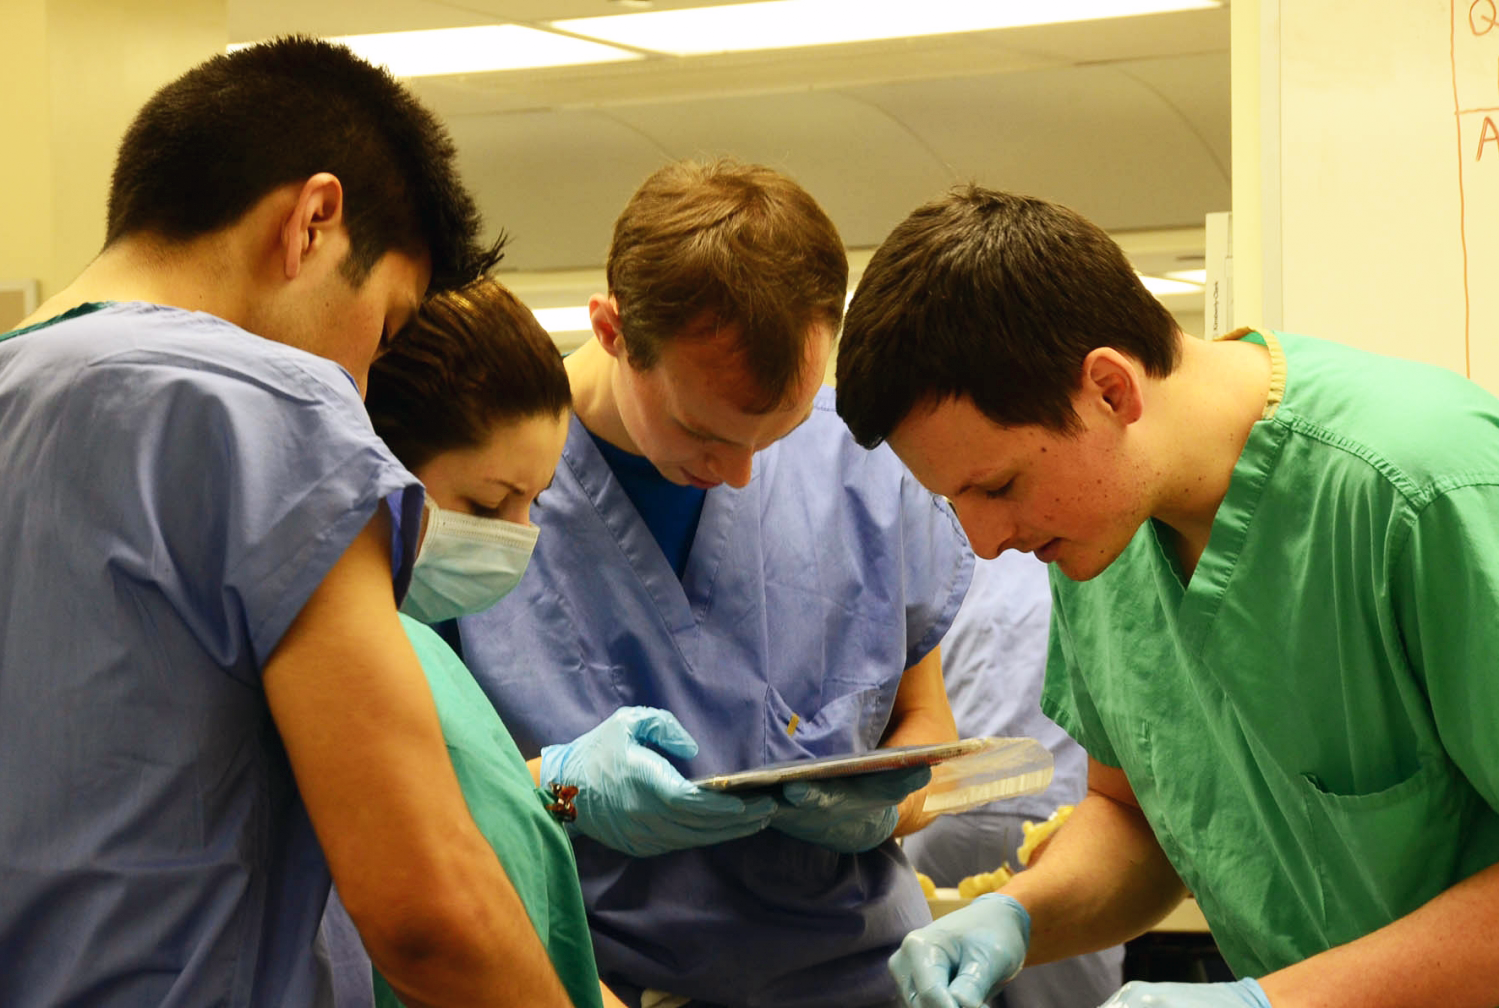 a group of medical professionals learning anatomy